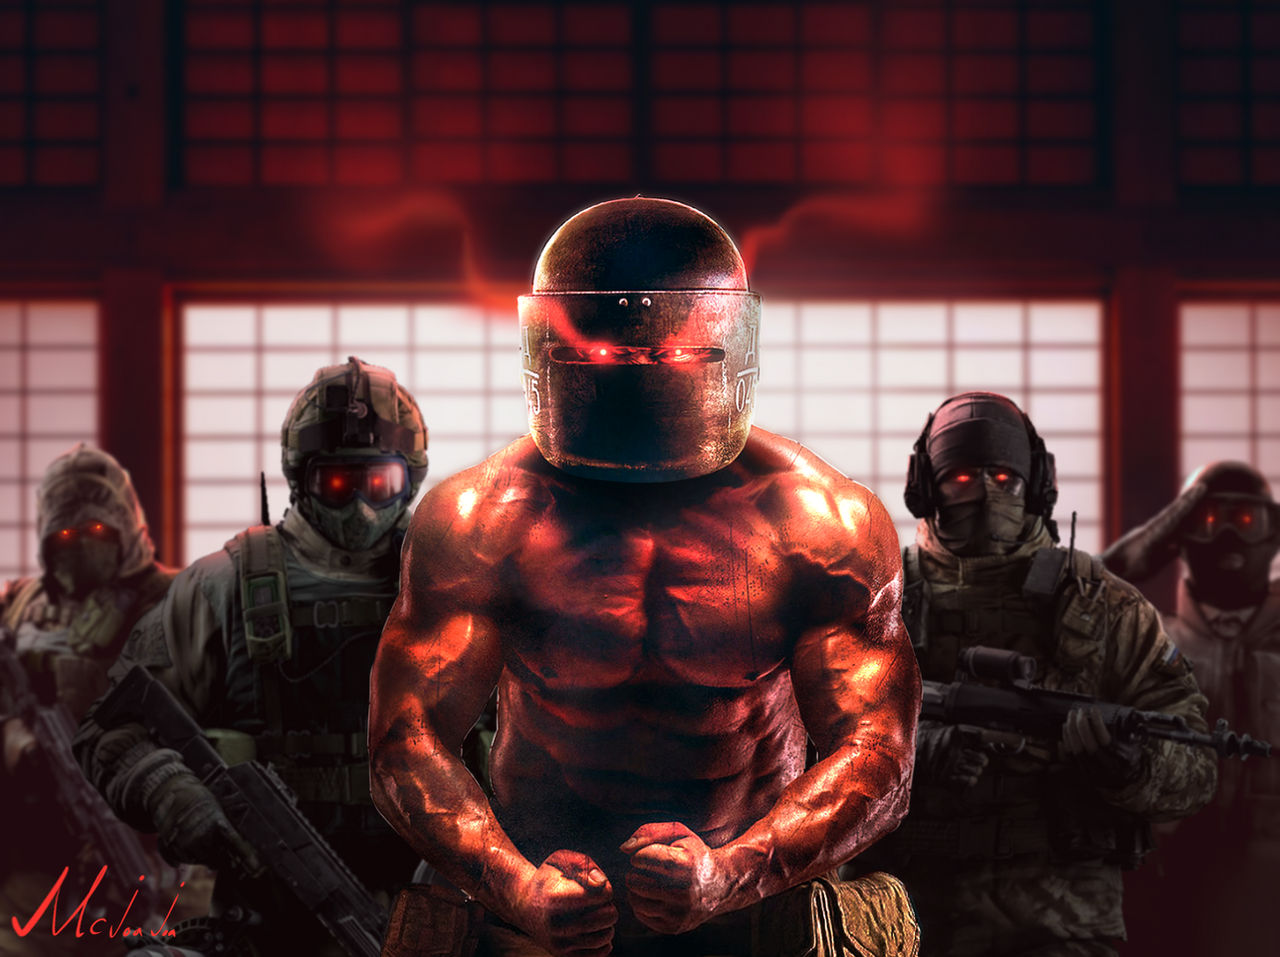 Most Strongest R6s Russian Tachanka Wallpaper By Mcjoajoa On